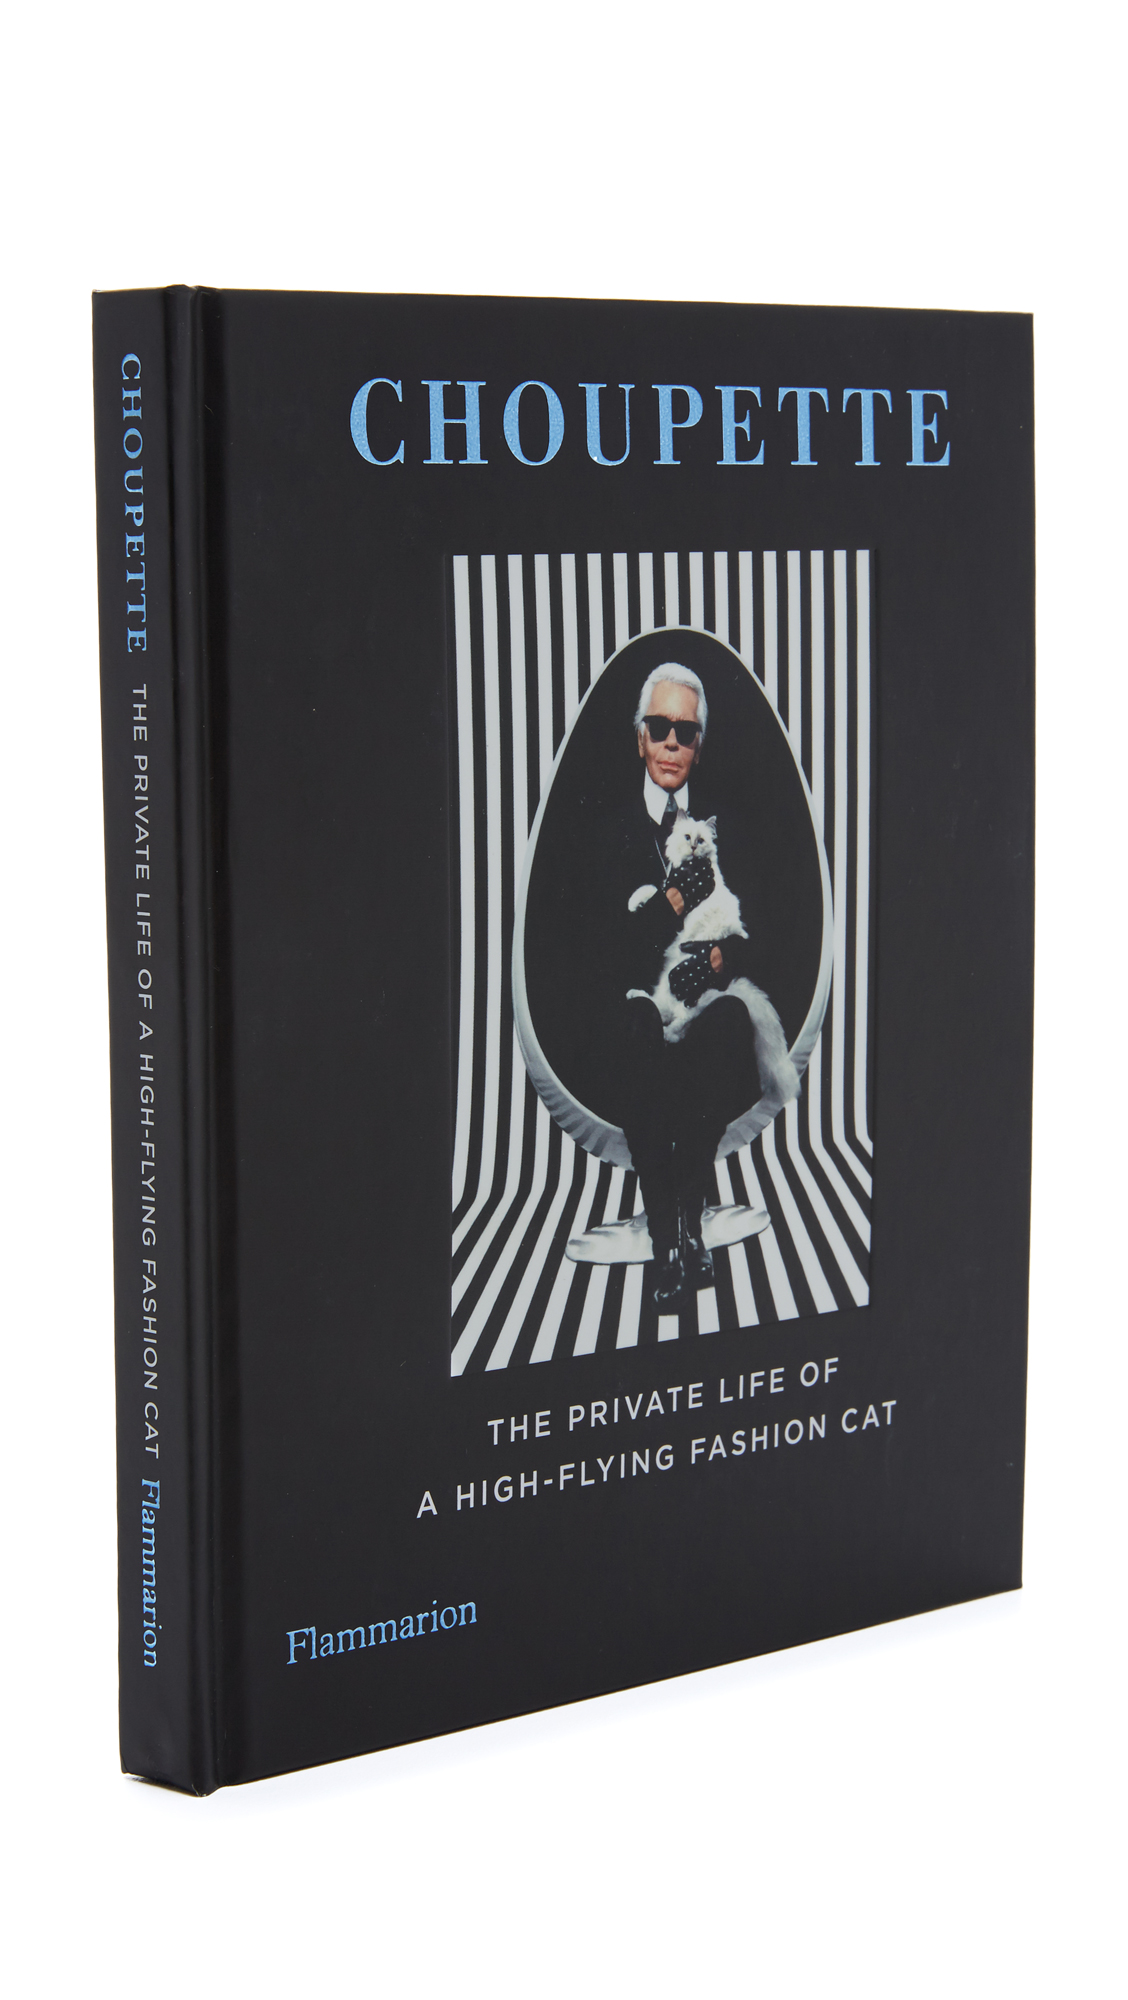 Books with Style Choupette - No Color